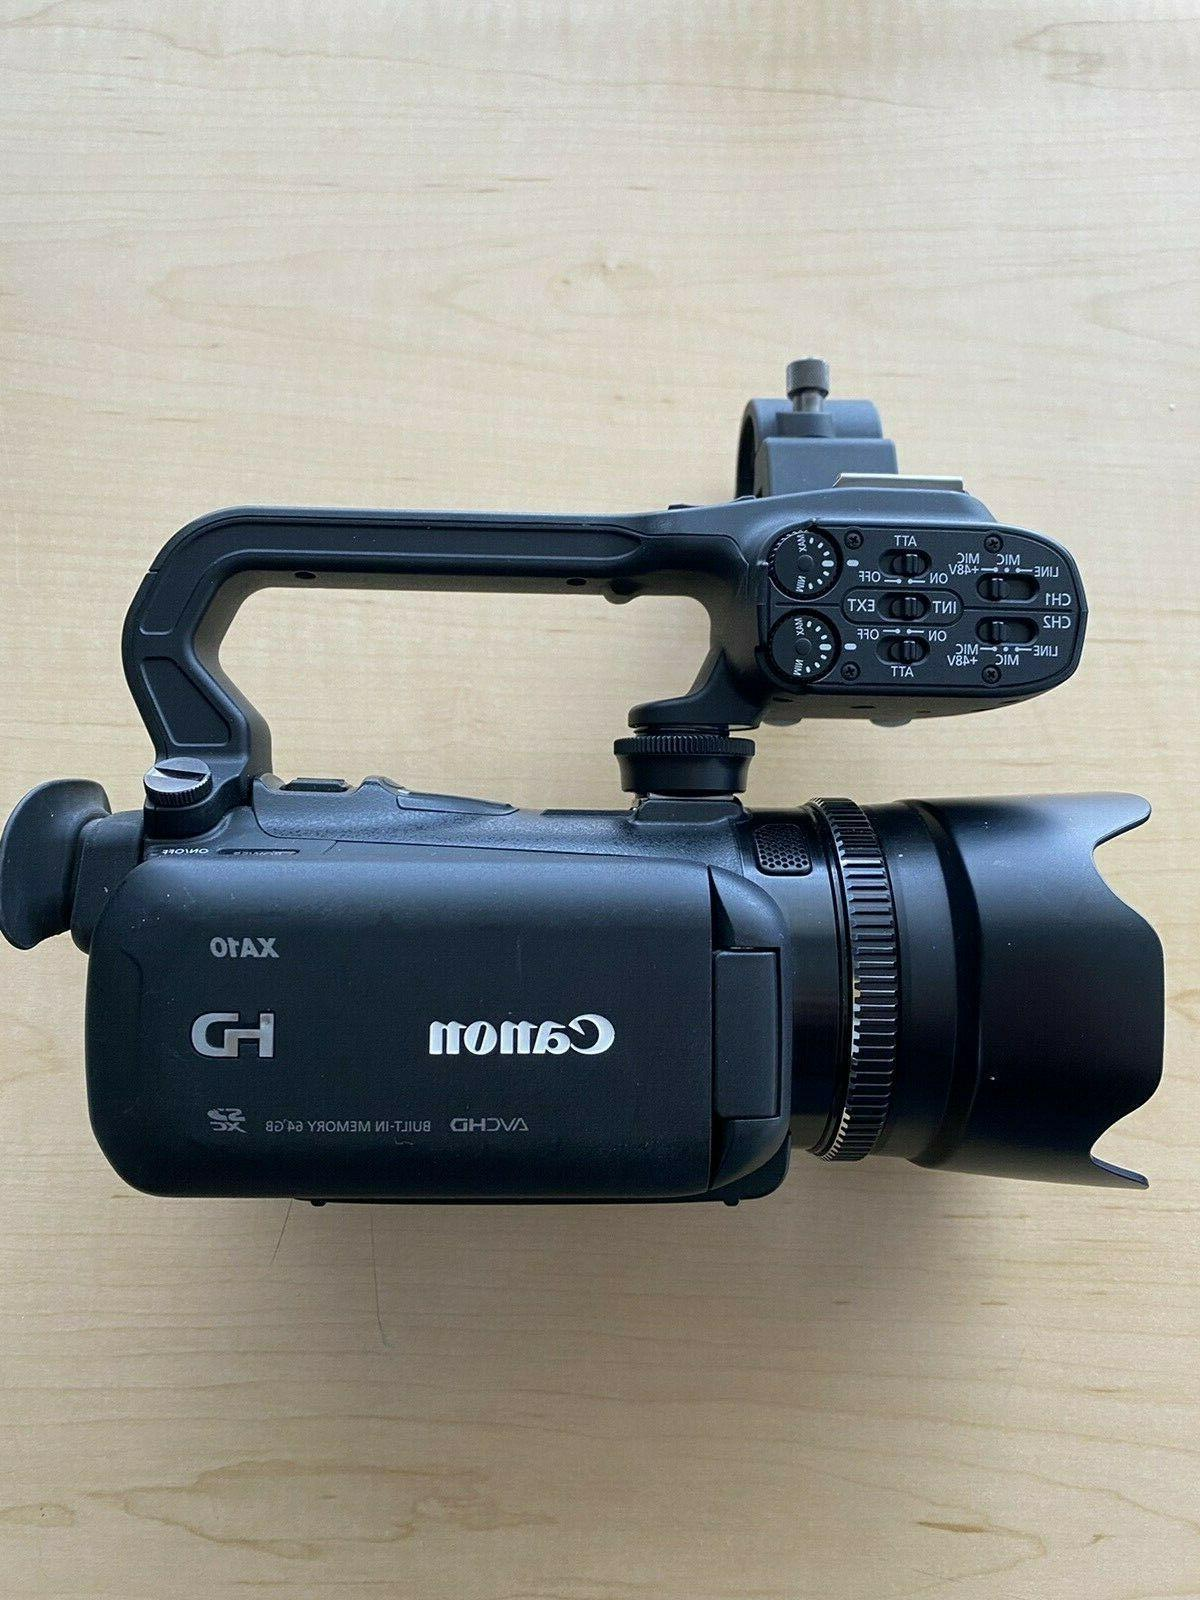 xa10 professional hd video camera in excellent